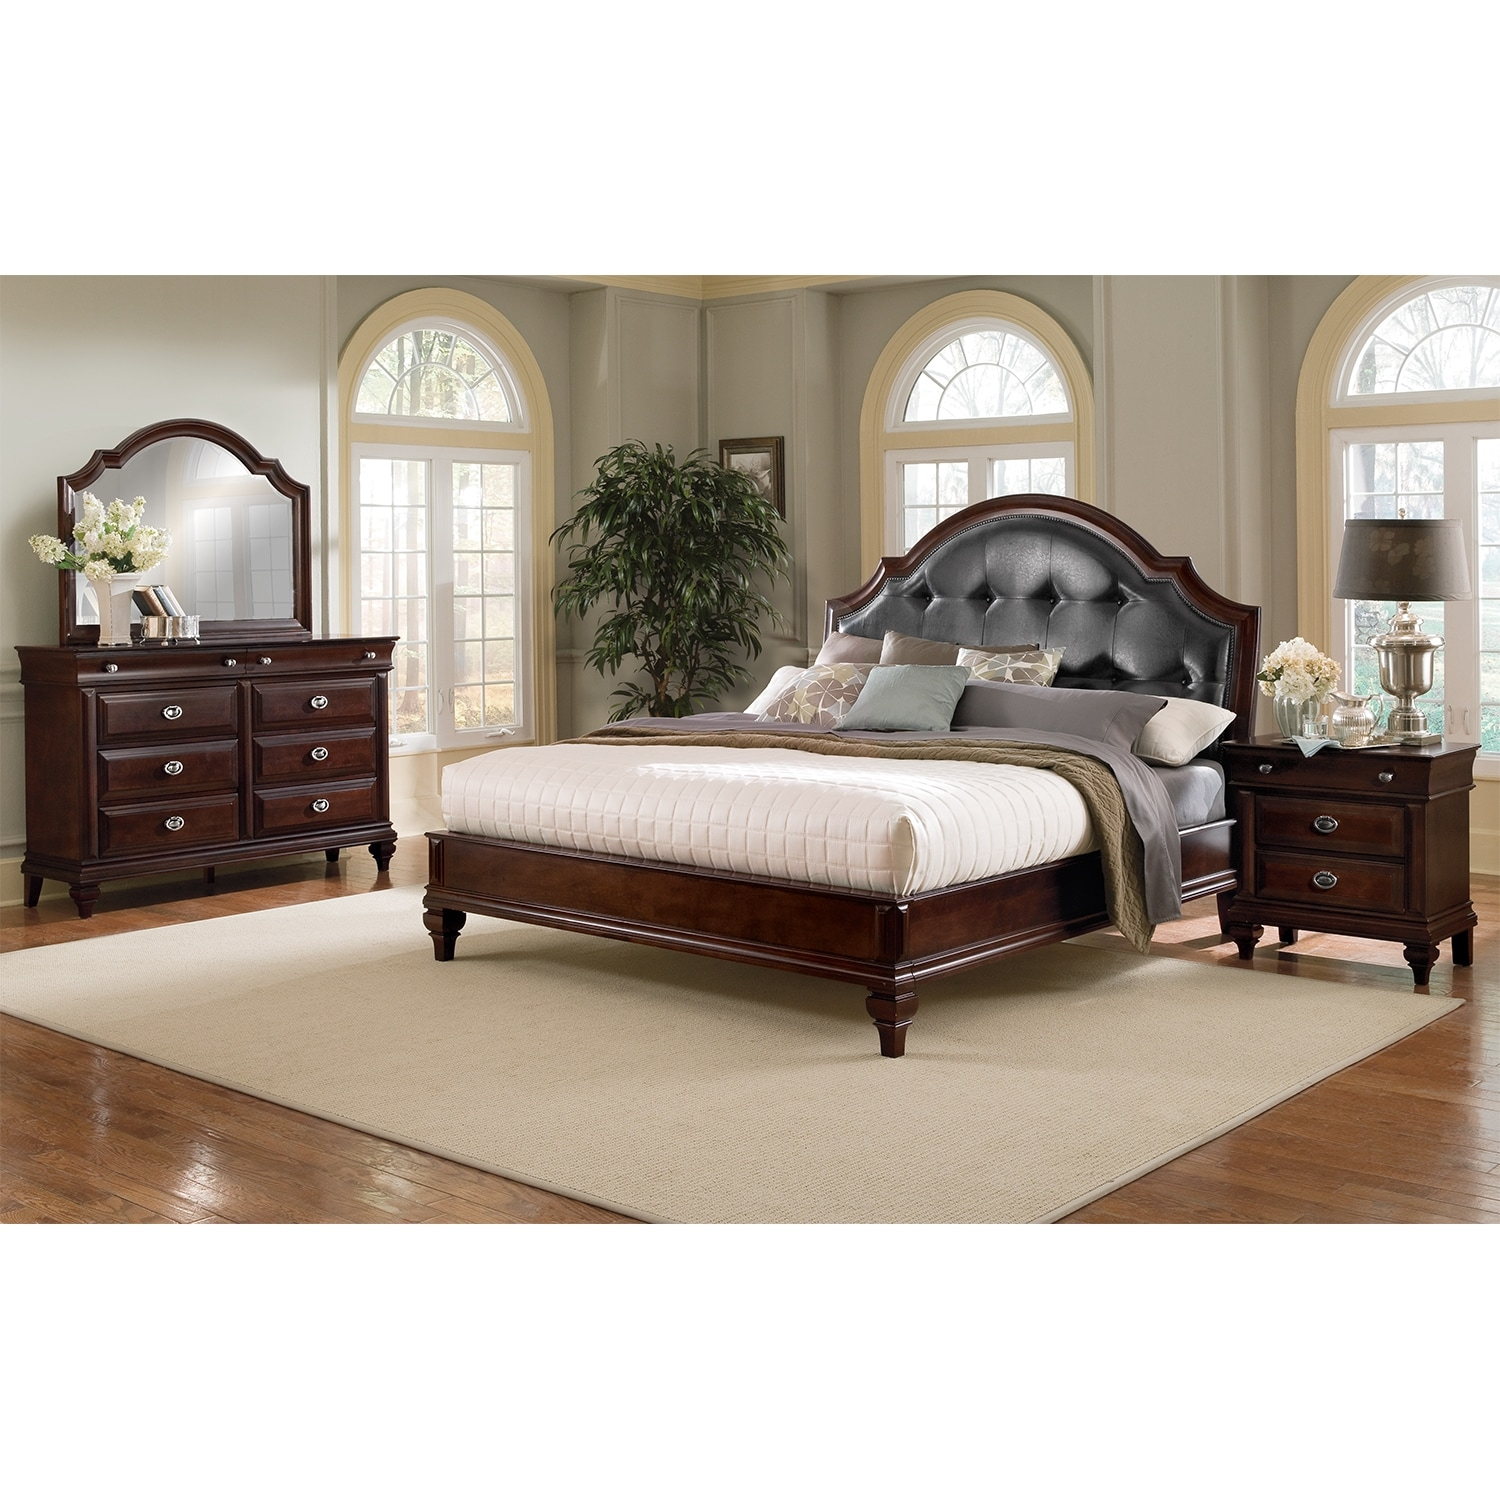 Charmant Bedroom Furniture   Manhattan 6 Piece King Upholstered Bedroom Set   Cherry